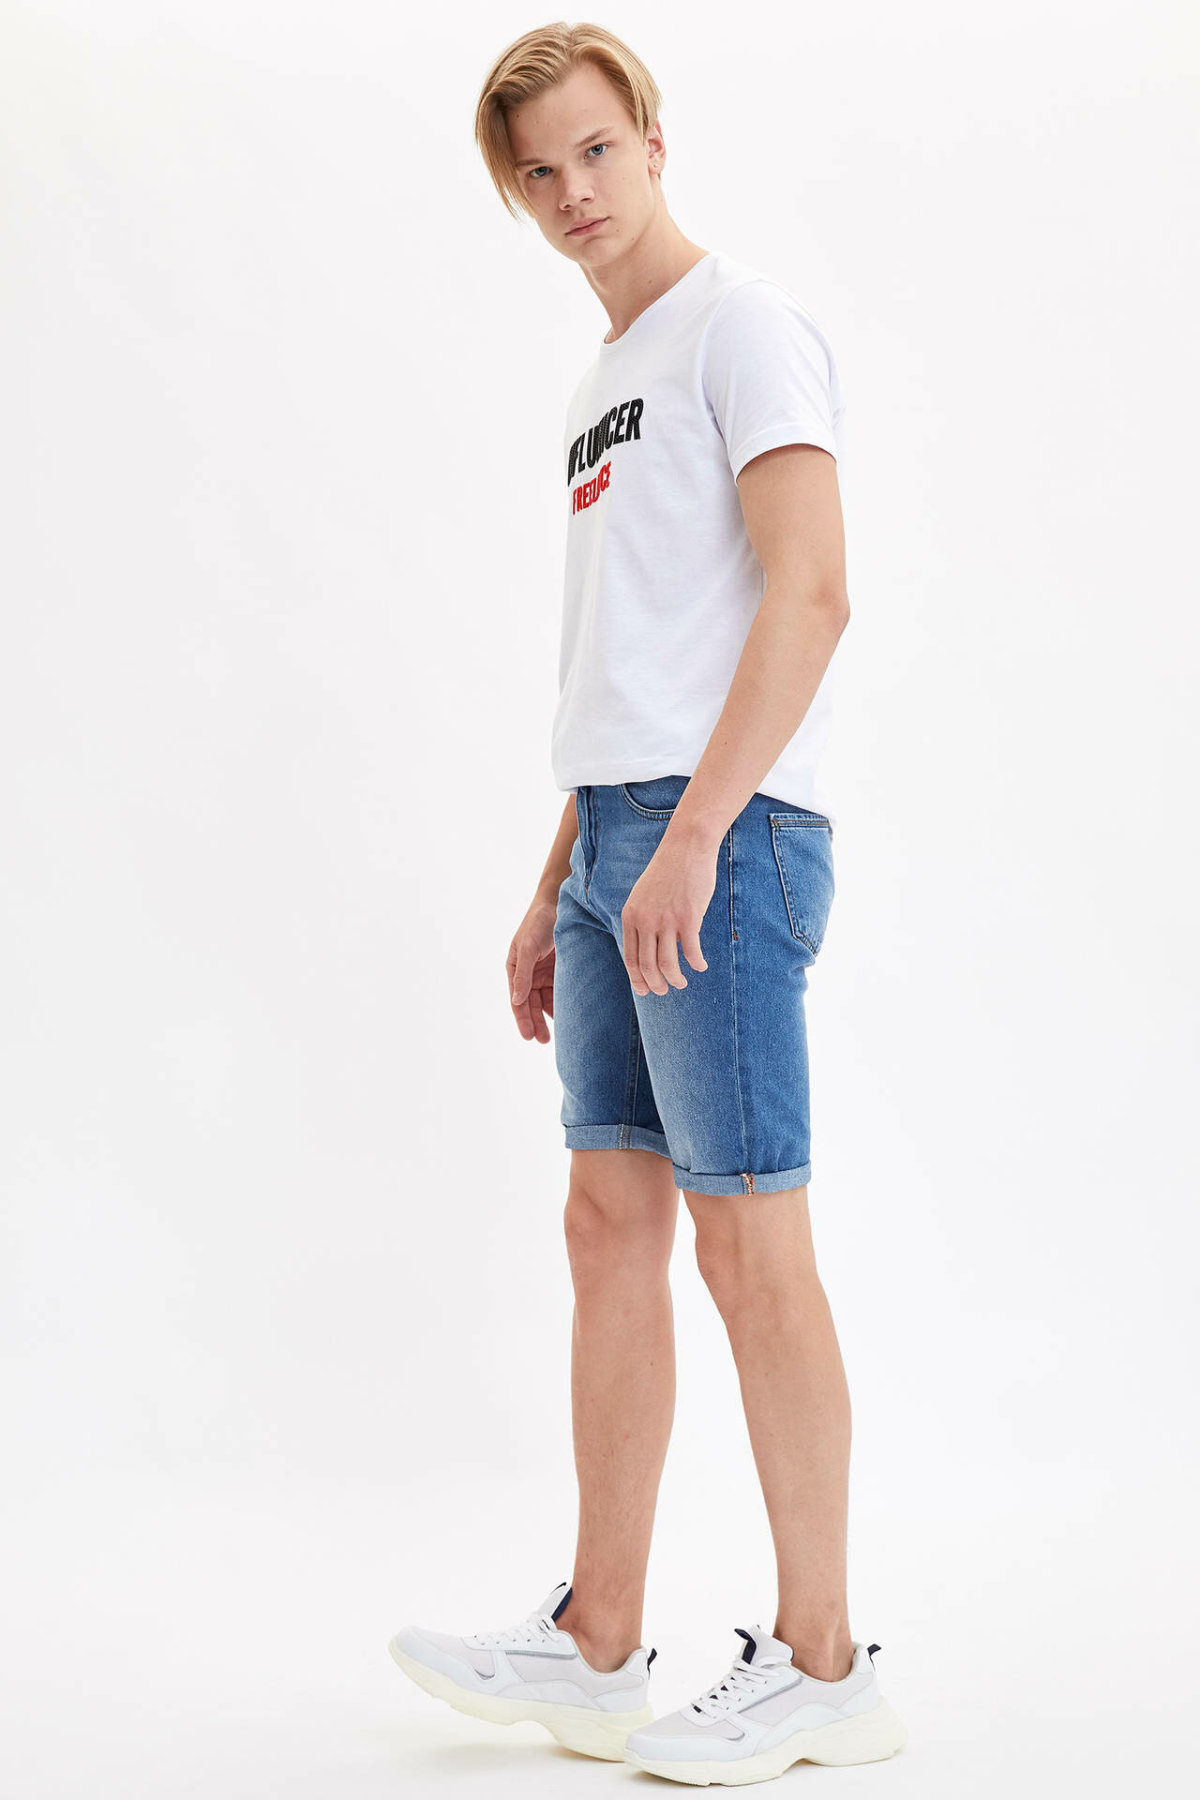 DeFacto Man Fashion Short Pants Male Casual Denim Shorts High Quality Men's Loose Blue Shorts Jeans New -L0175AZ19HS